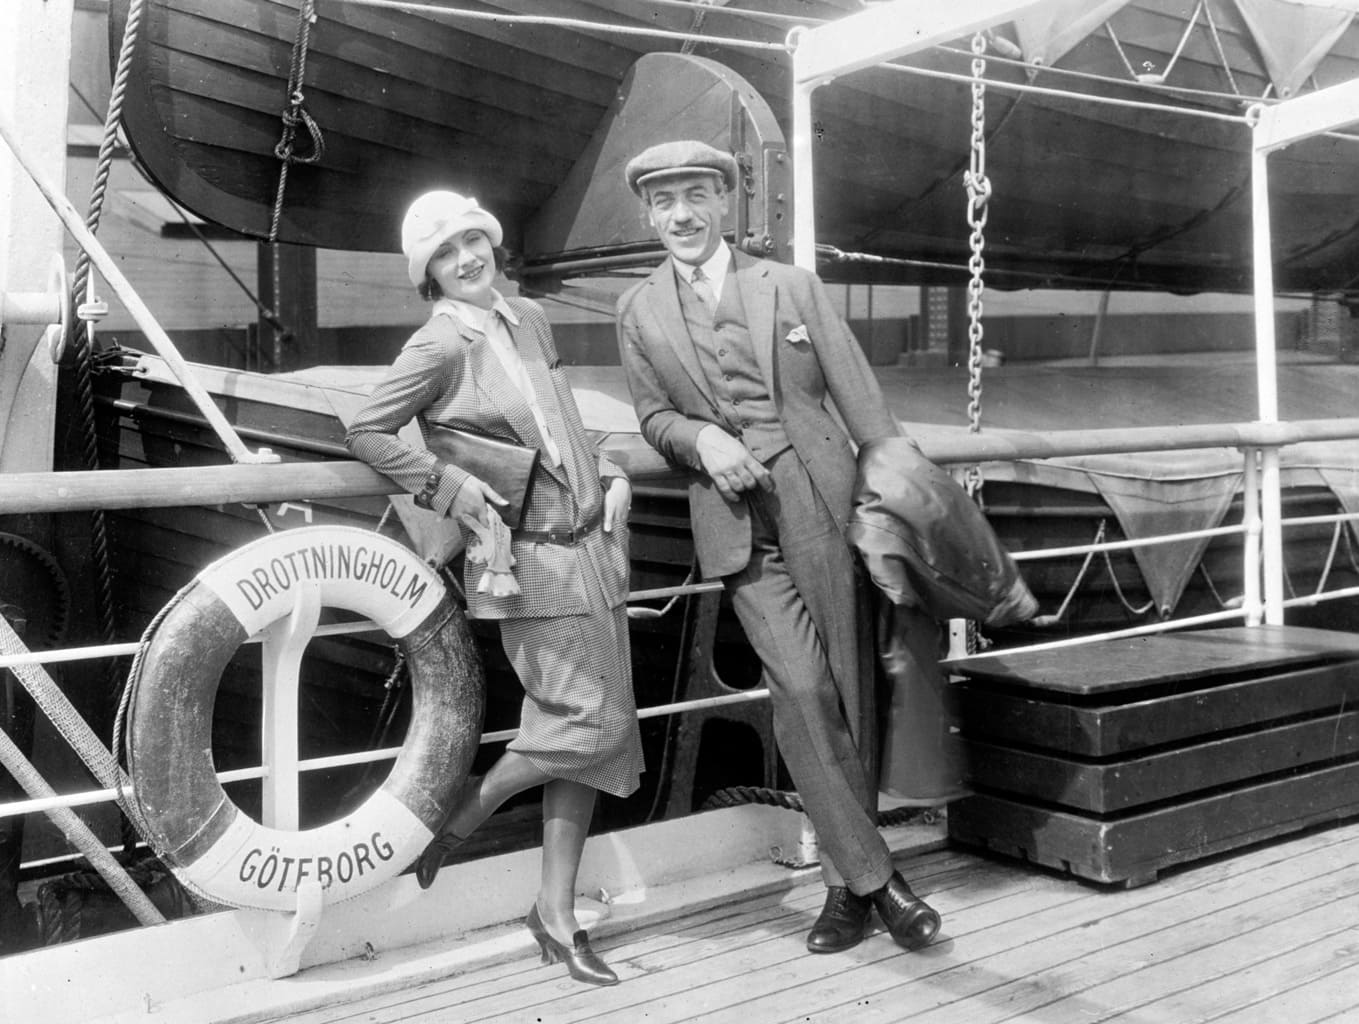 Greta Garbo and Mauritz Stiller on their way to the United States in 1925.